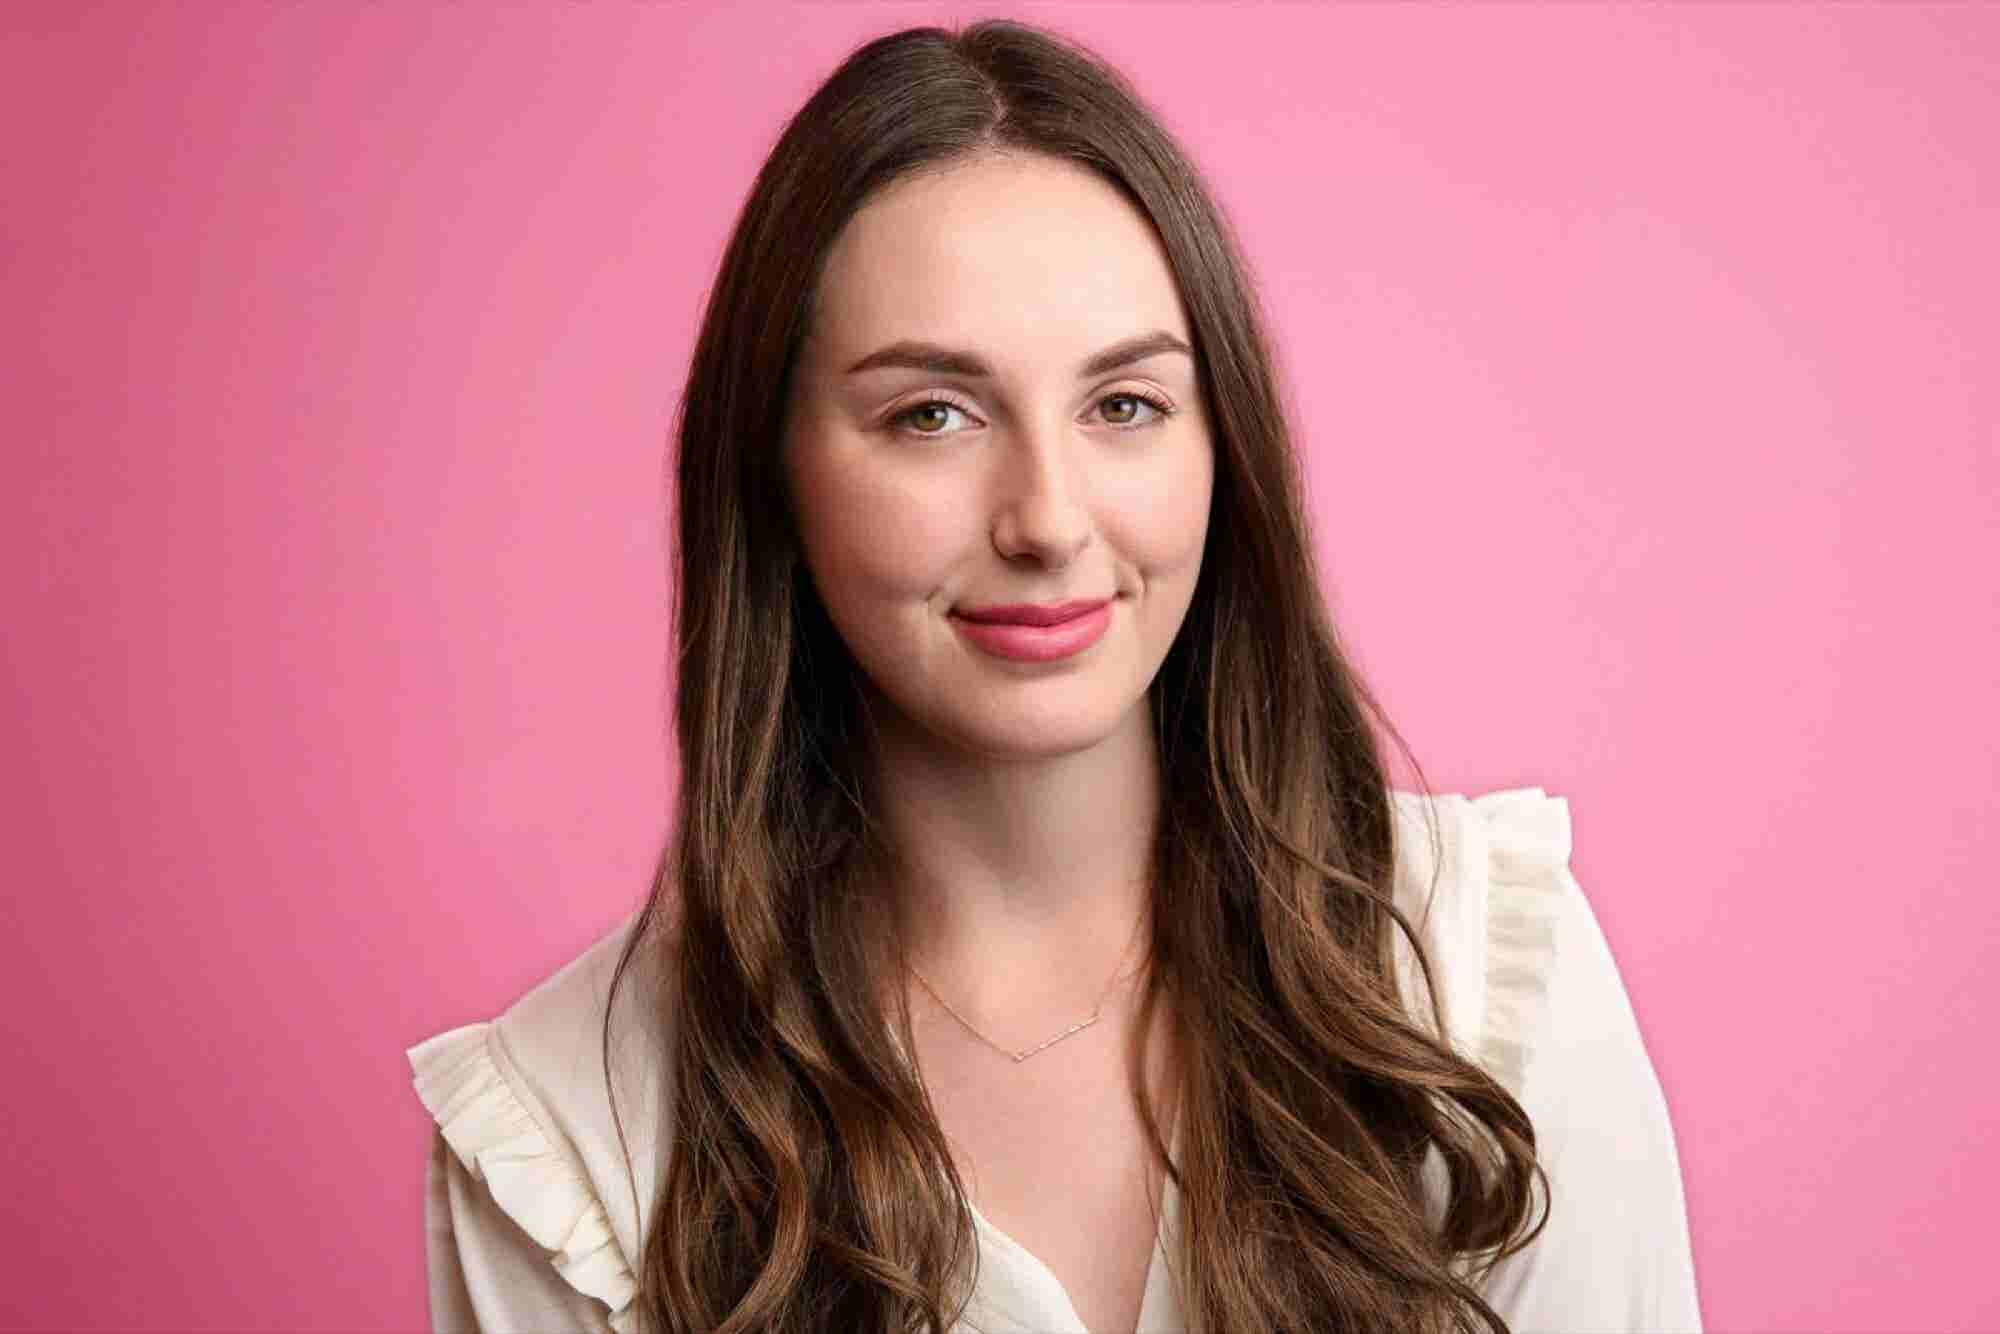 'Women Should Not Be Embarrassed to Buy Vaginal Products!' Says This 24-Year-Old Founder